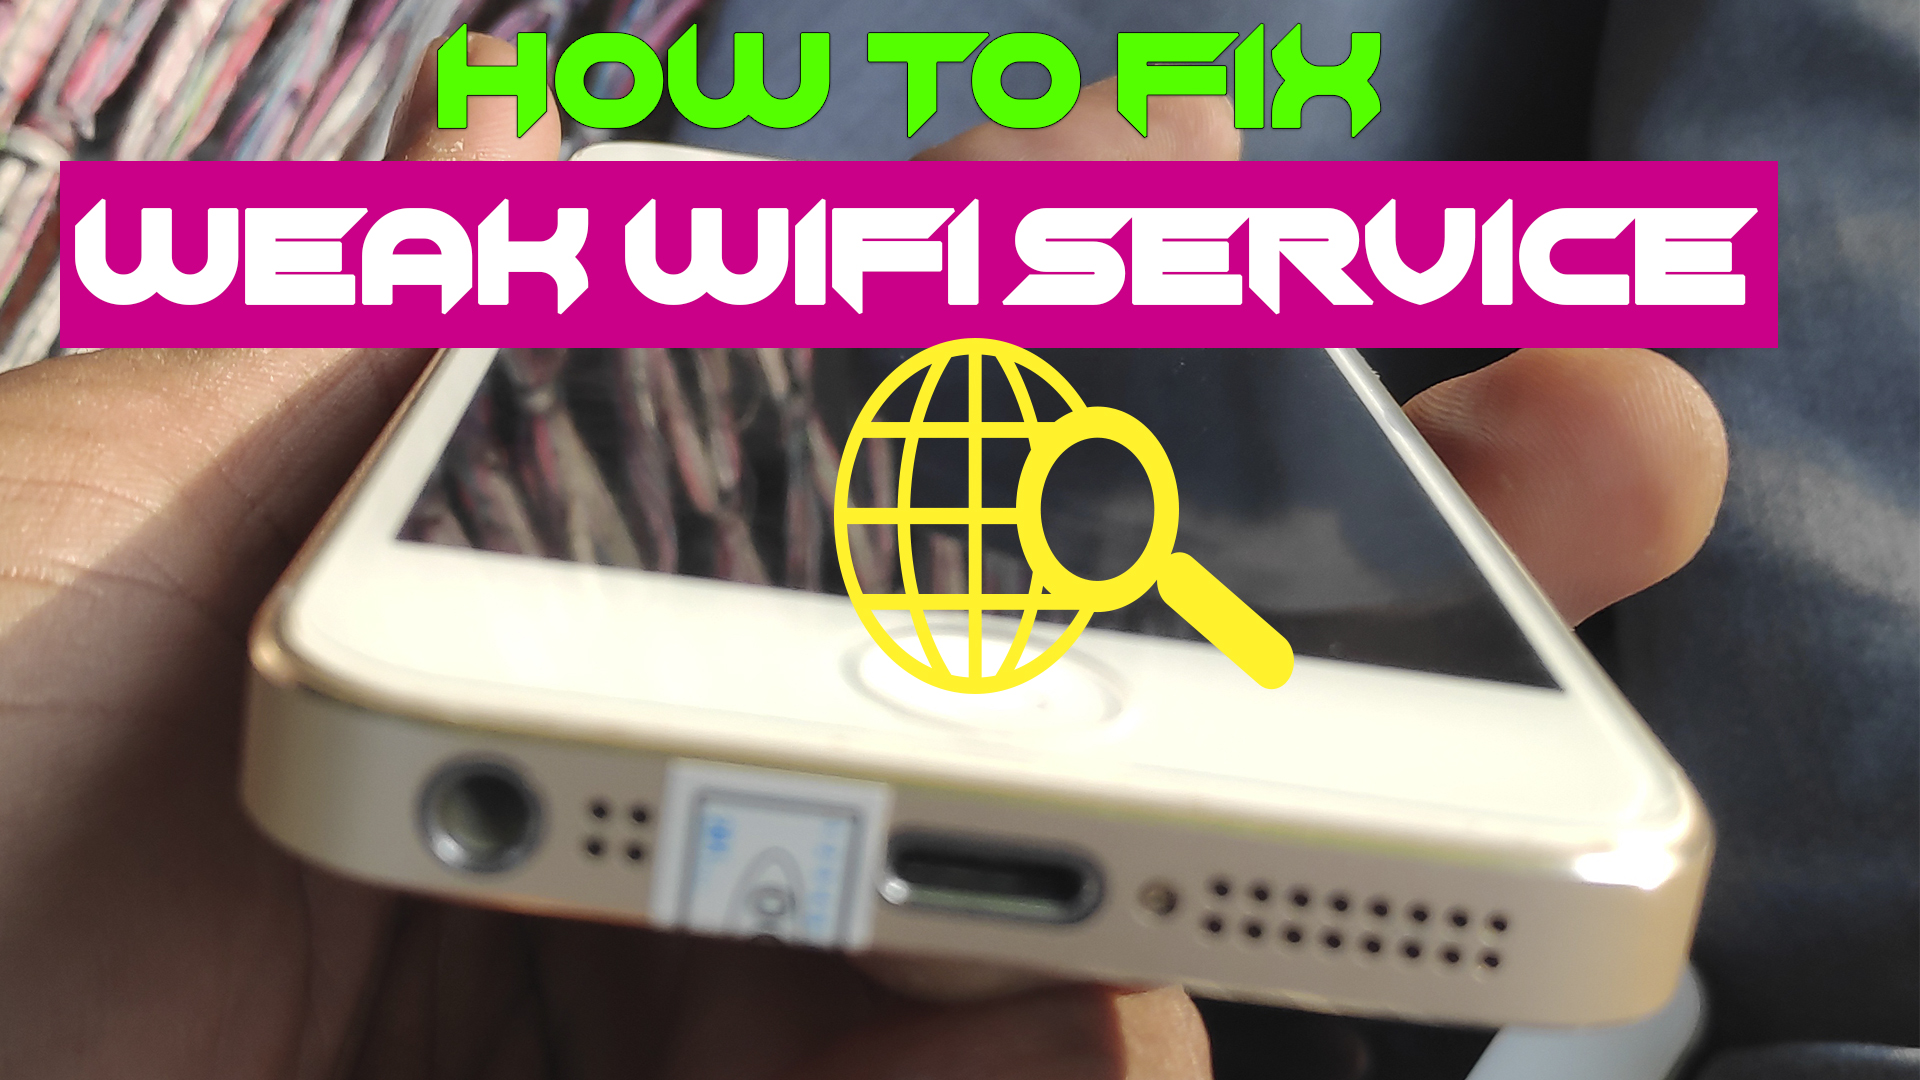 It ways to deal with fix a Fry WiFi signal on your iPhone without fix